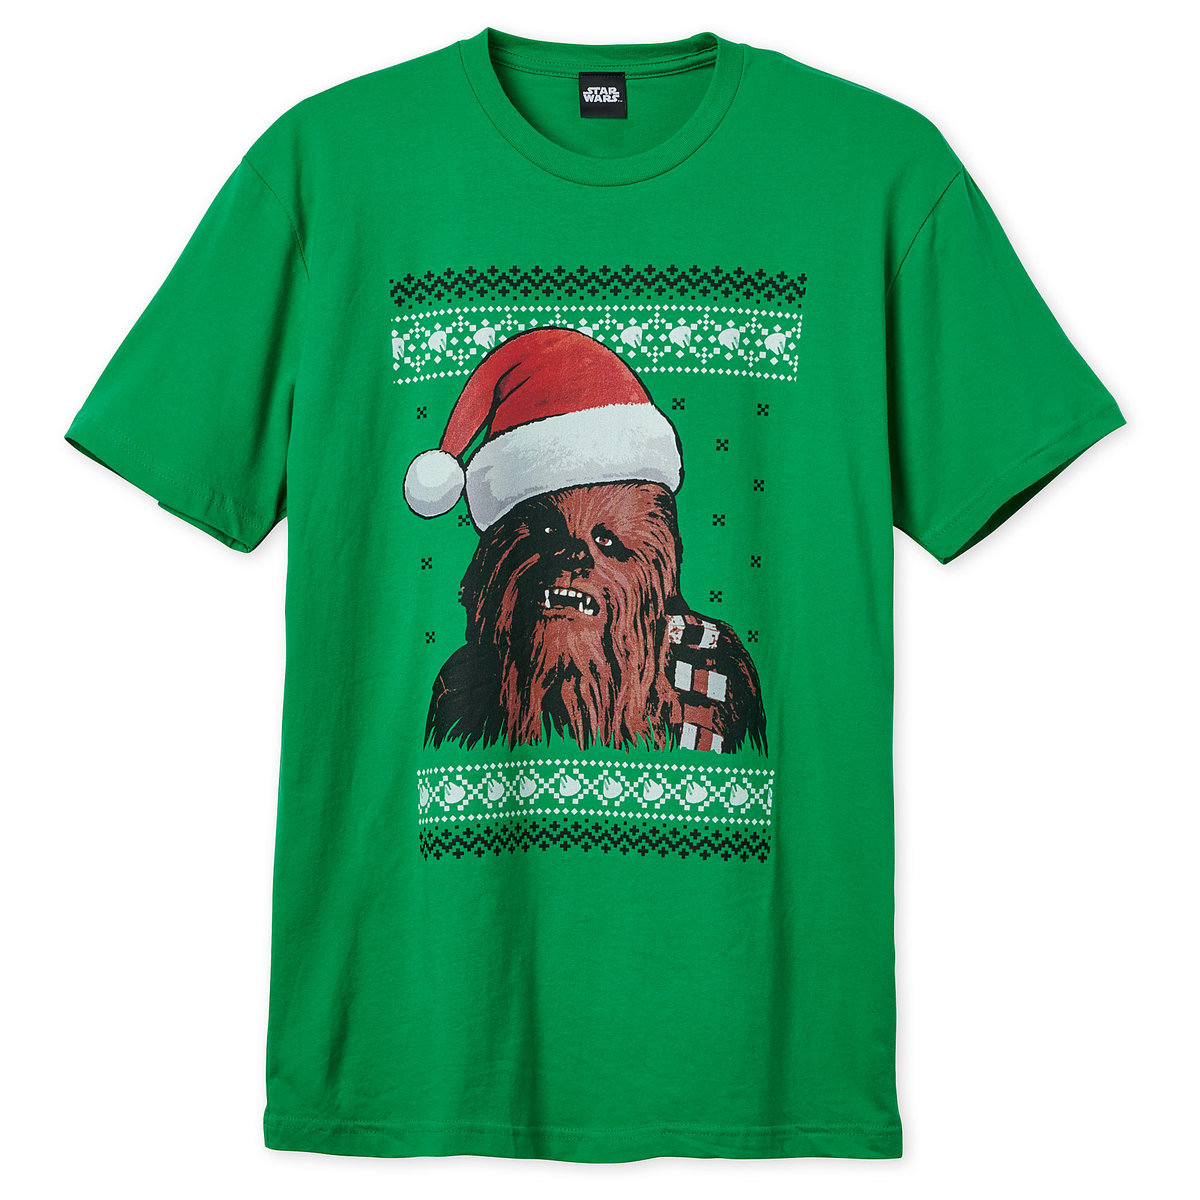 5943203599a5 Product Image of Chewbacca Holiday T-Shirt for Adults # 1